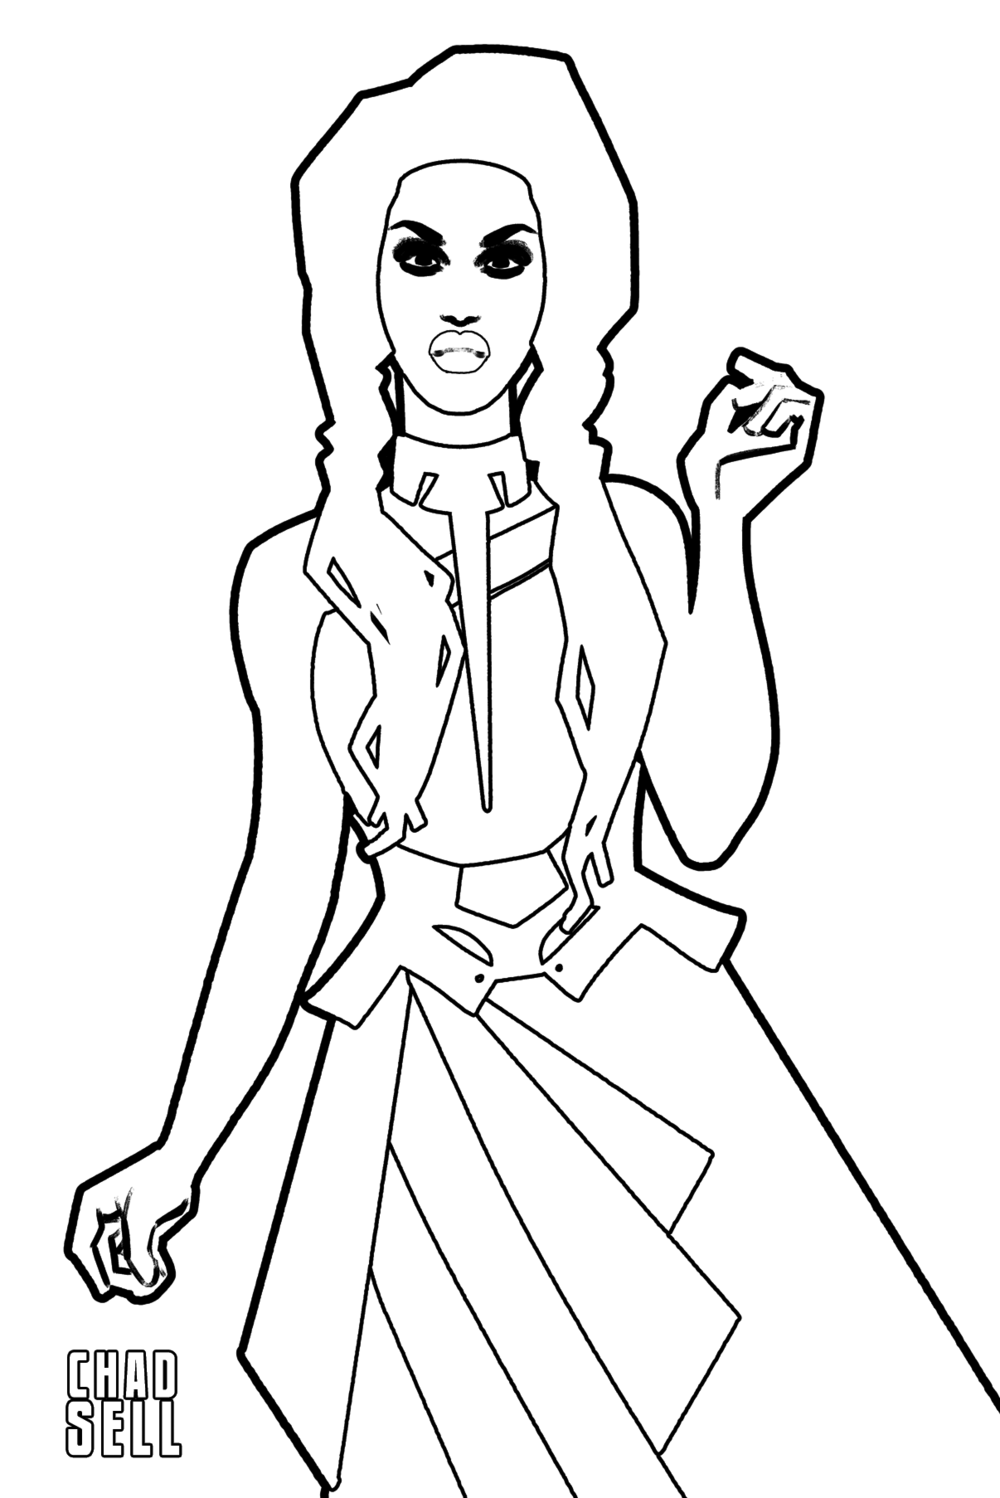 1 2 3 4 5 6 7 8 9 10 11 12 13 14 15 16 17 18 19 20 21 22 23 24 25. Previous  Next. Bendelacreme Coloring Book.png